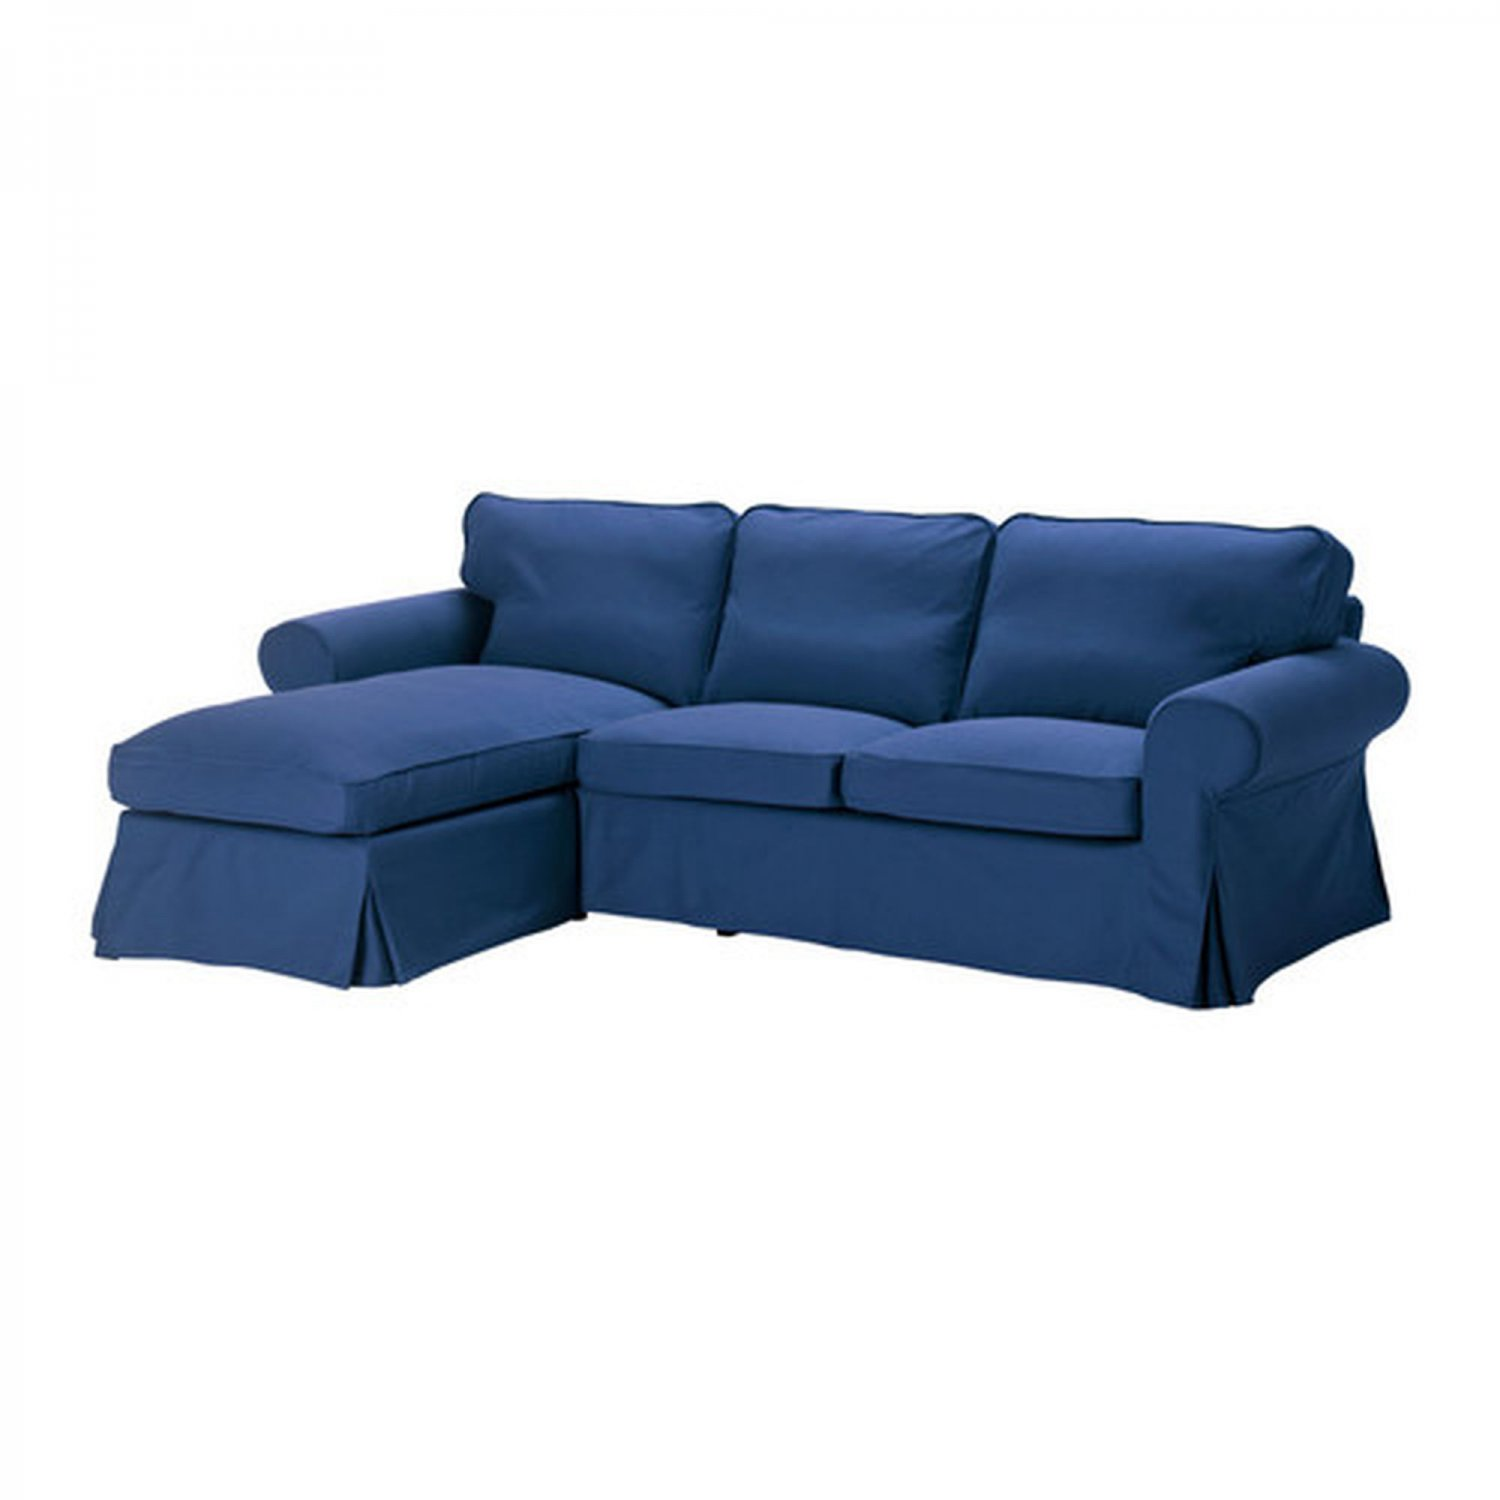 Ikea ektorp loveseat with chaise lounge cover slipcover Ikea lounge sofa